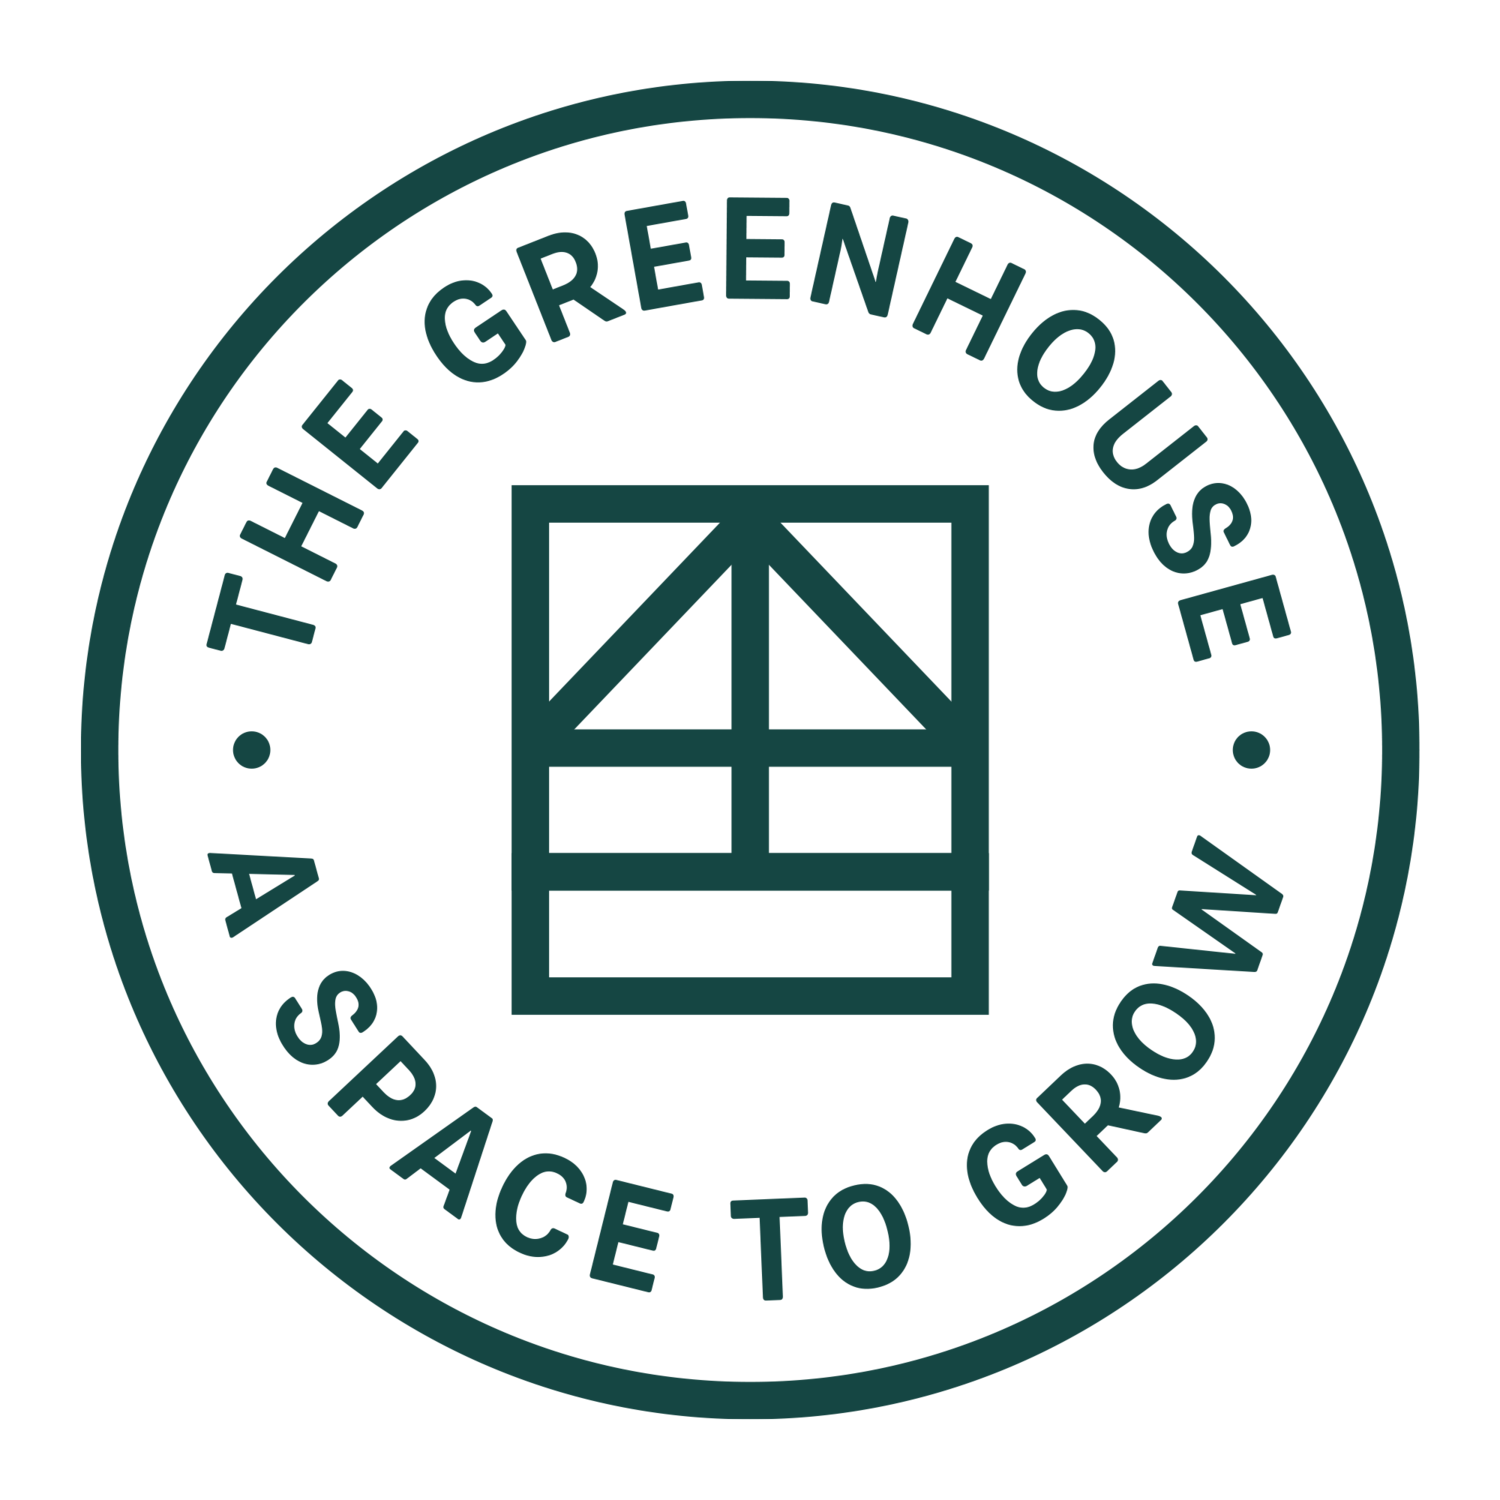 The Greenhouse. A creative co-working space in Meanwood, Leeds